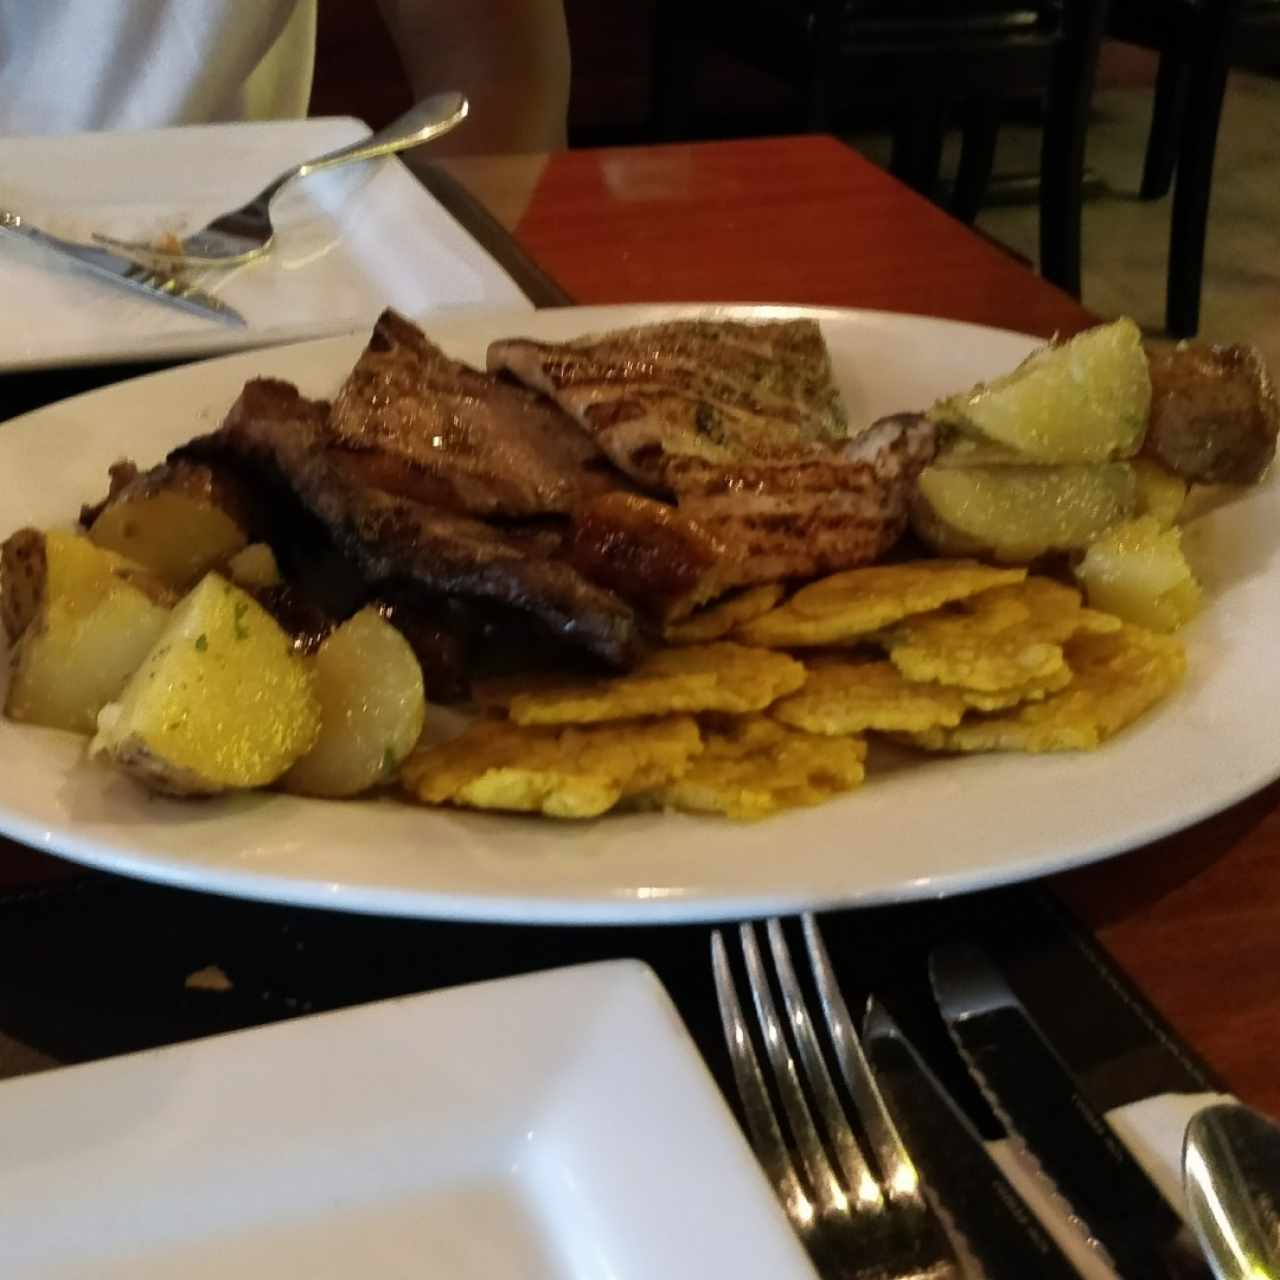 Nuestra parrilla - Parrillada familiar